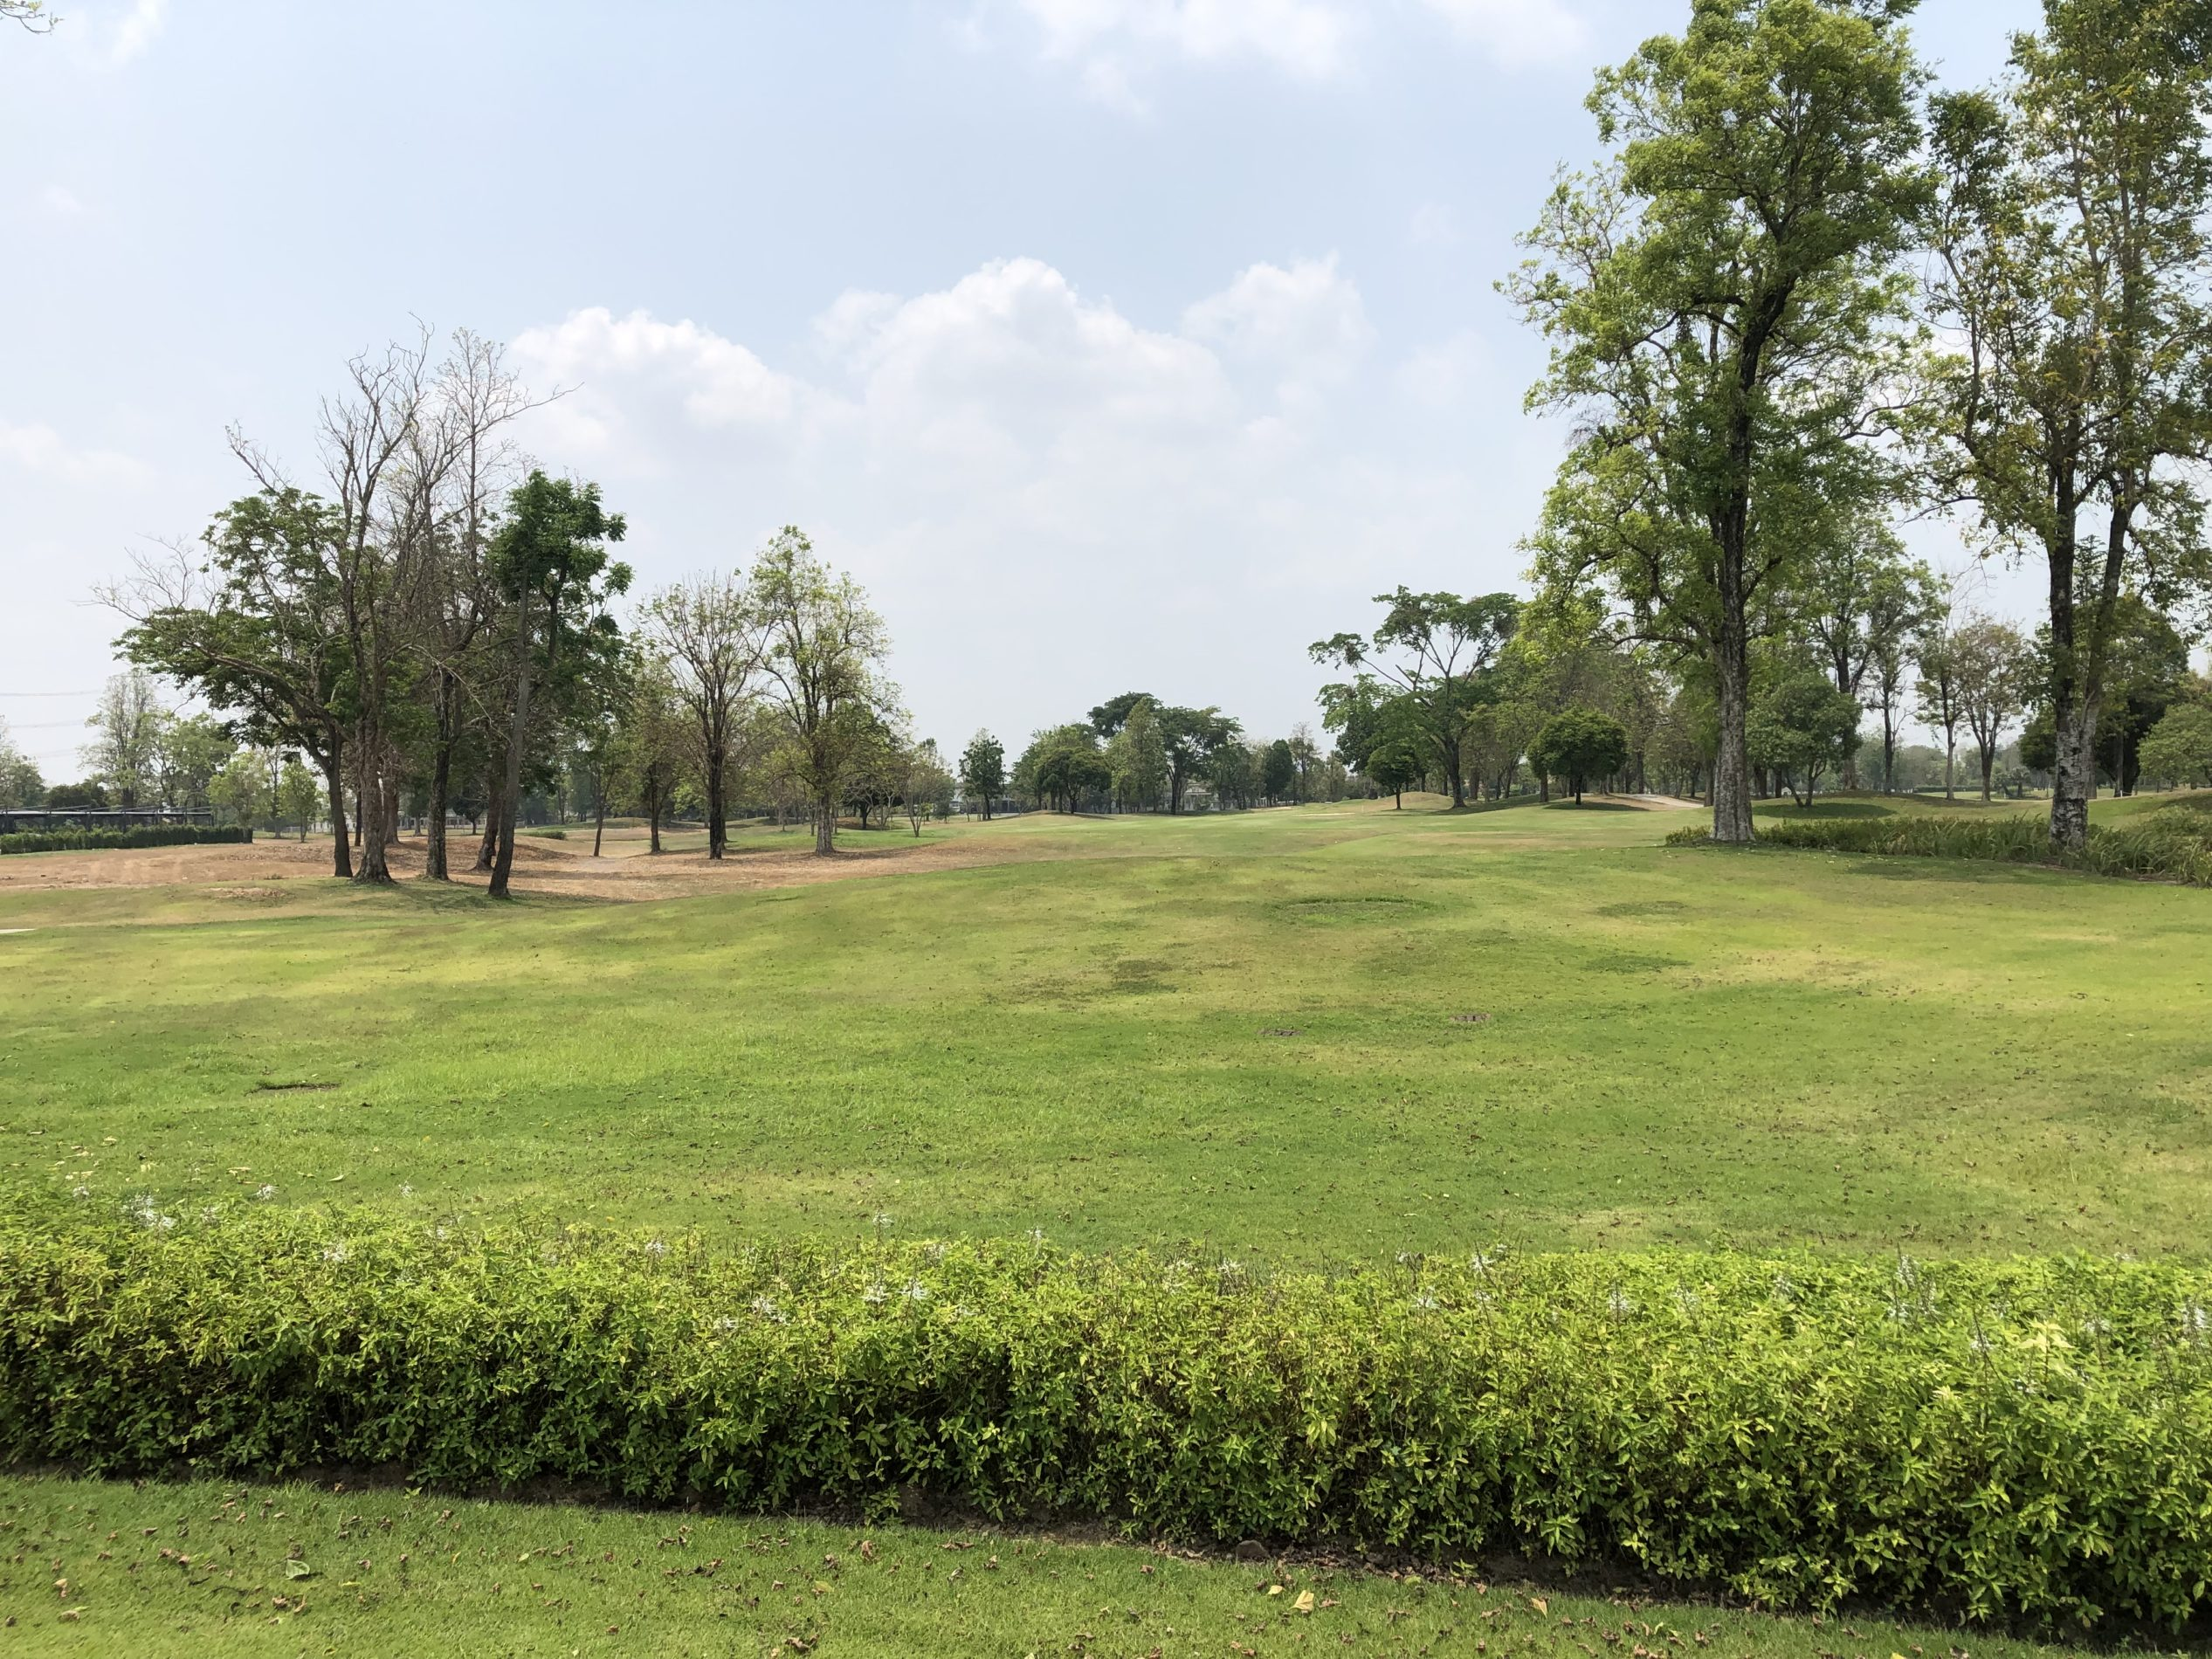 FLORA VILLE GOLF & COUNTRY CLUB